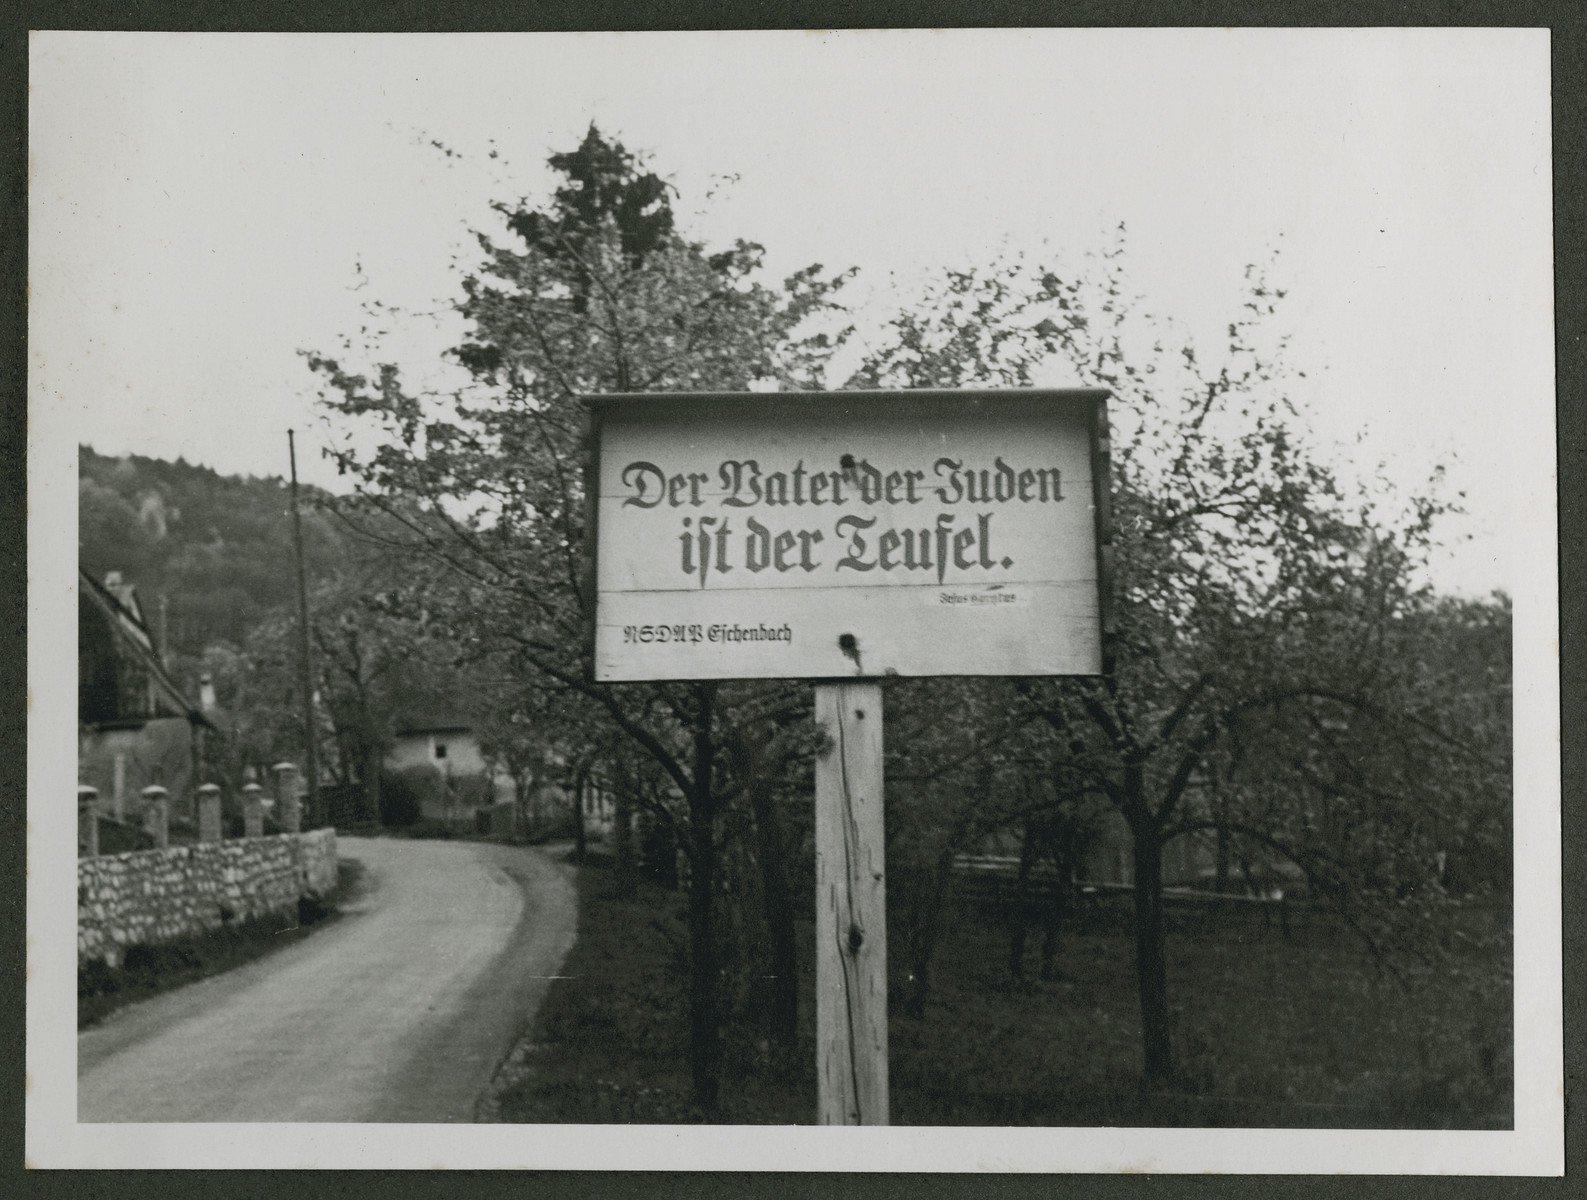 """One photograph from an album of antisemitic signs in Germany.  The sign (in German) reads, """"Der Vater der Juden ist der Teufel.  NSDAP Eichenbach.""""  [The father of the Jew is the devil.]"""